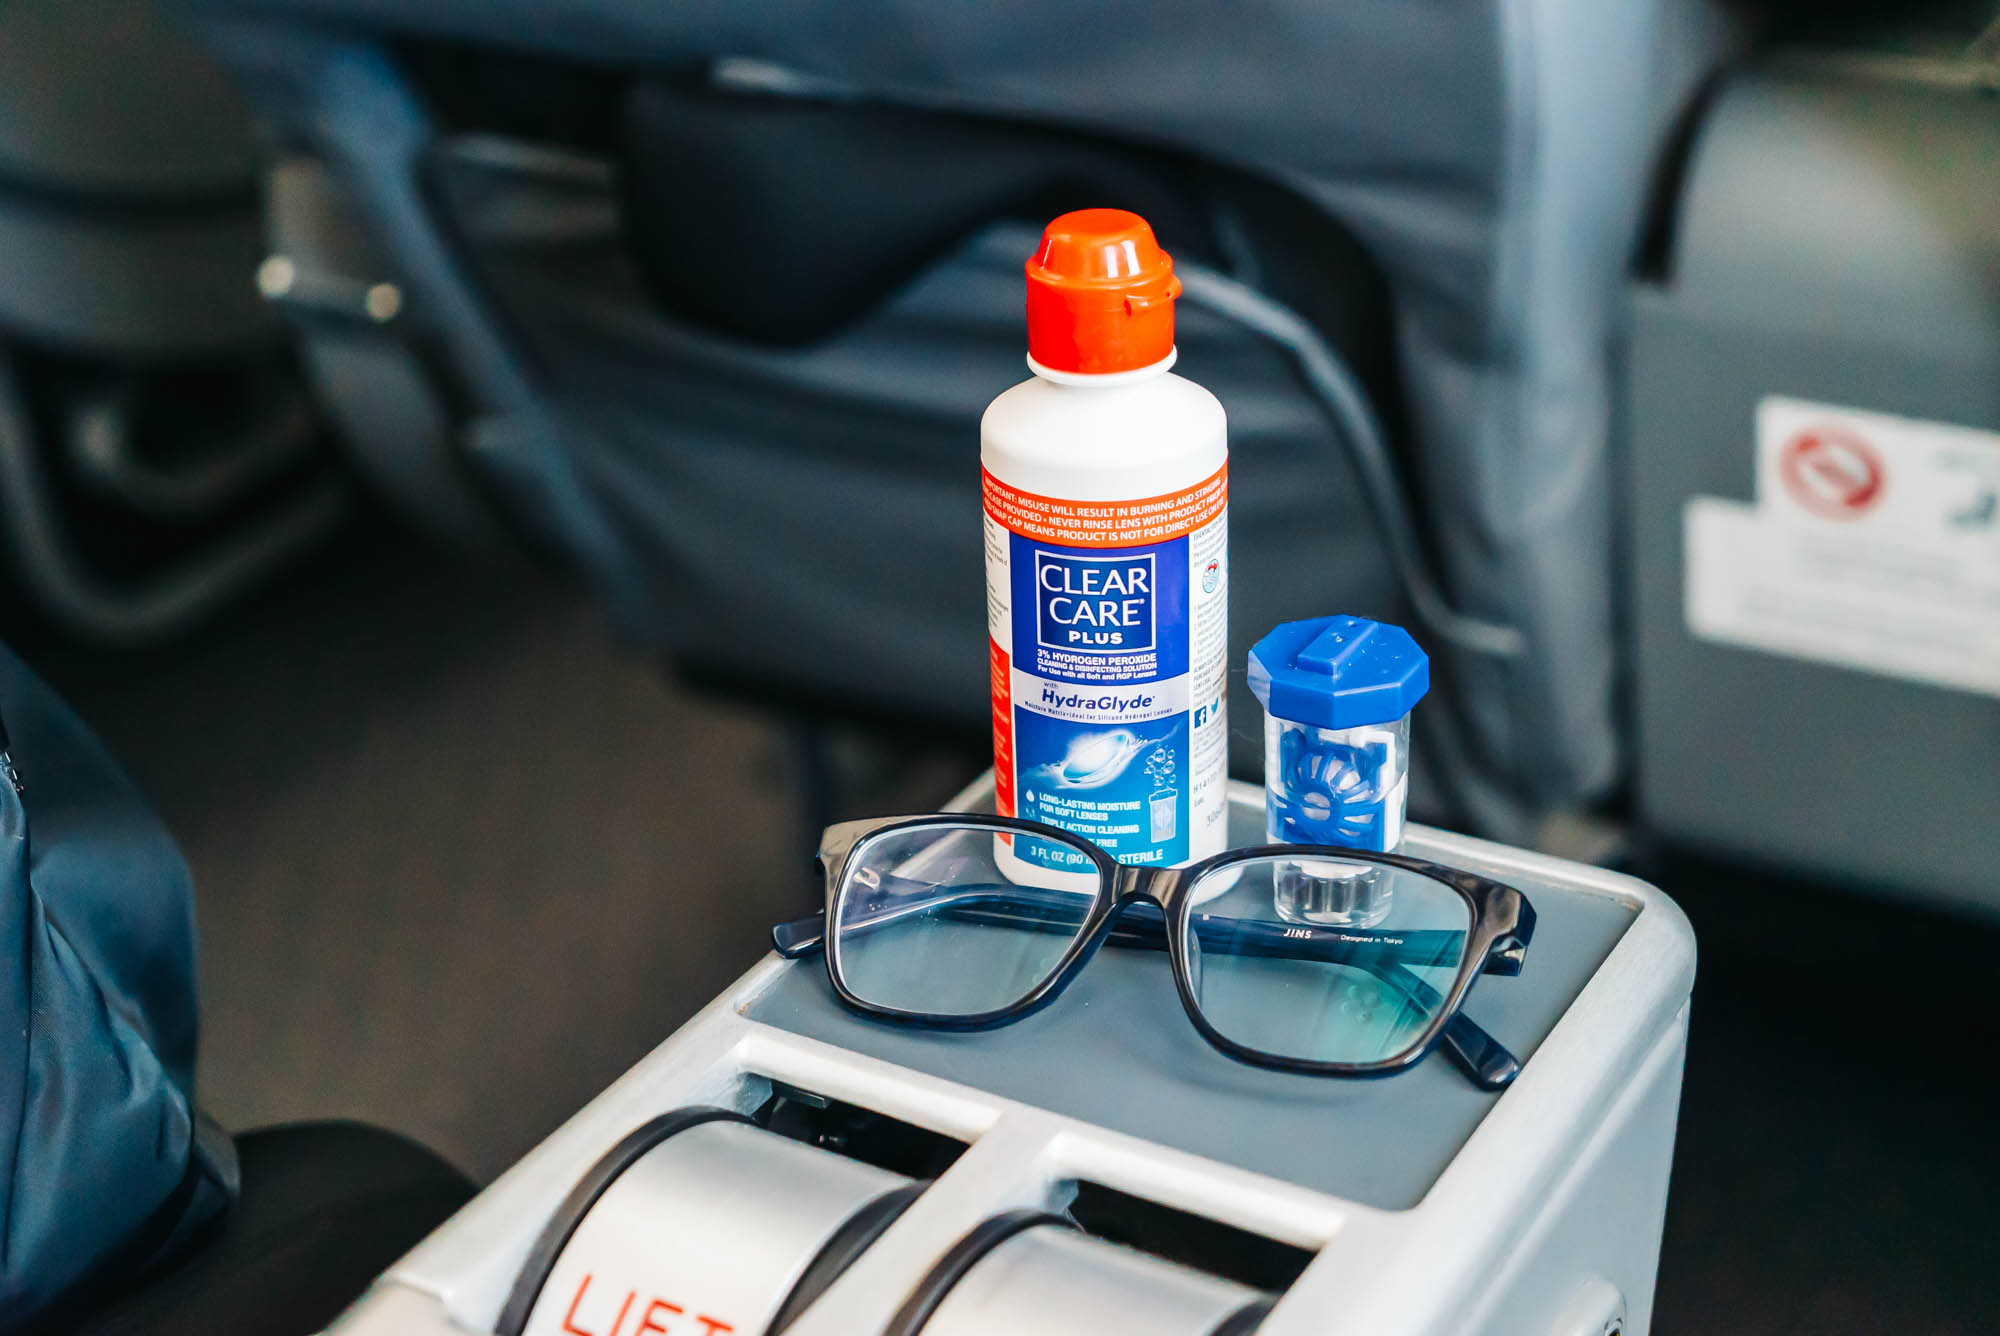 Contact Lens Solution and Glasses